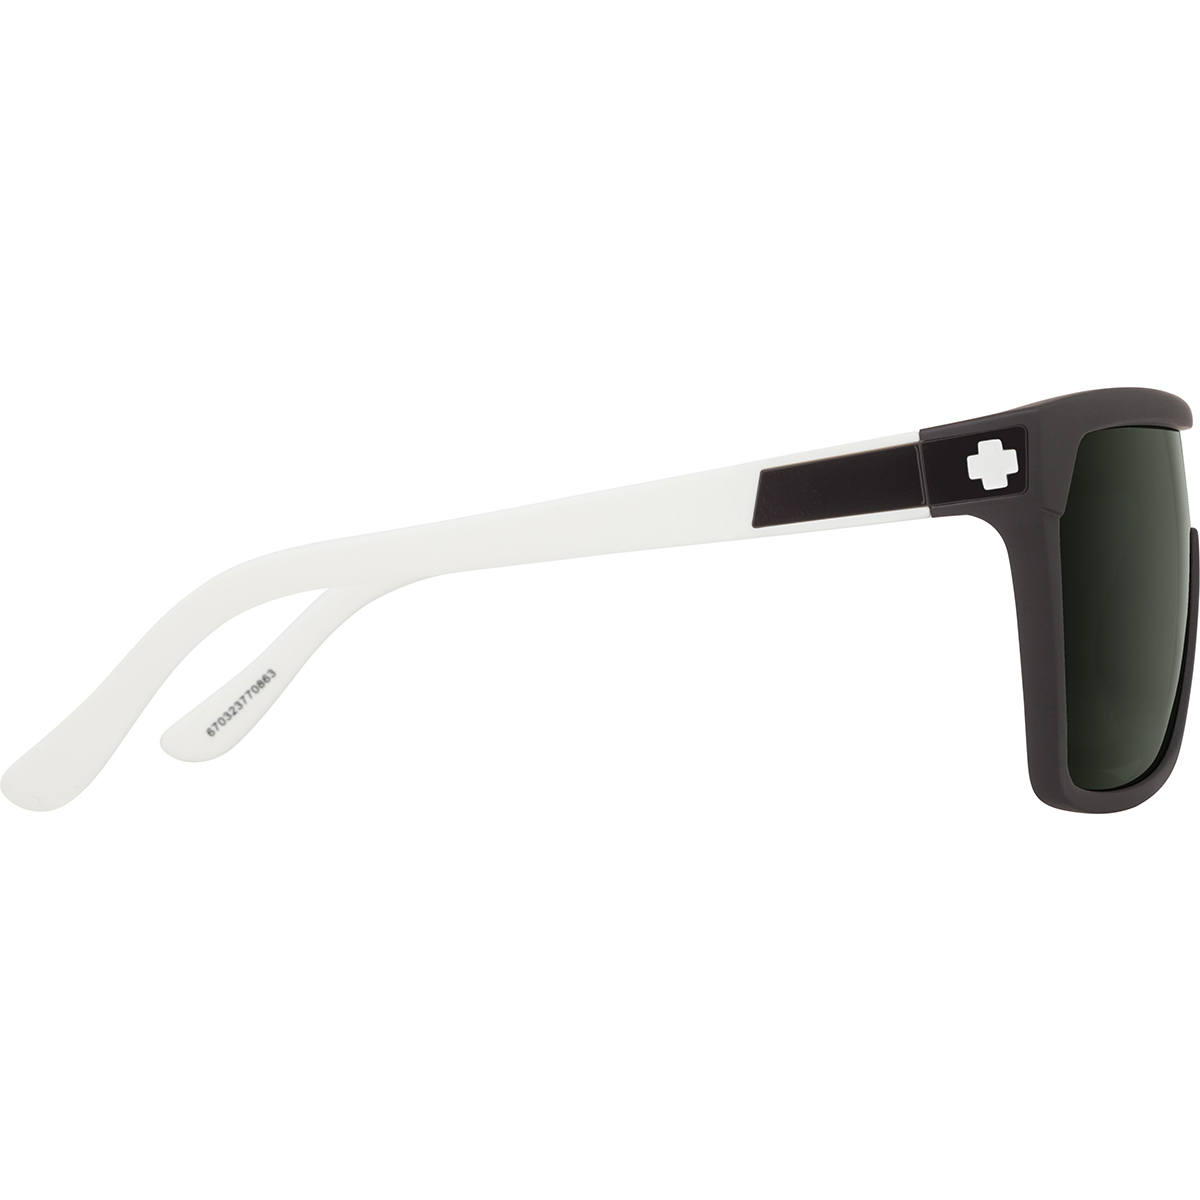 SPY SUNGLASSES スパイ サングラス FLYNN フライン MATTE EBONY/IVORY - HAPPY GRAY GREEN 670323770863